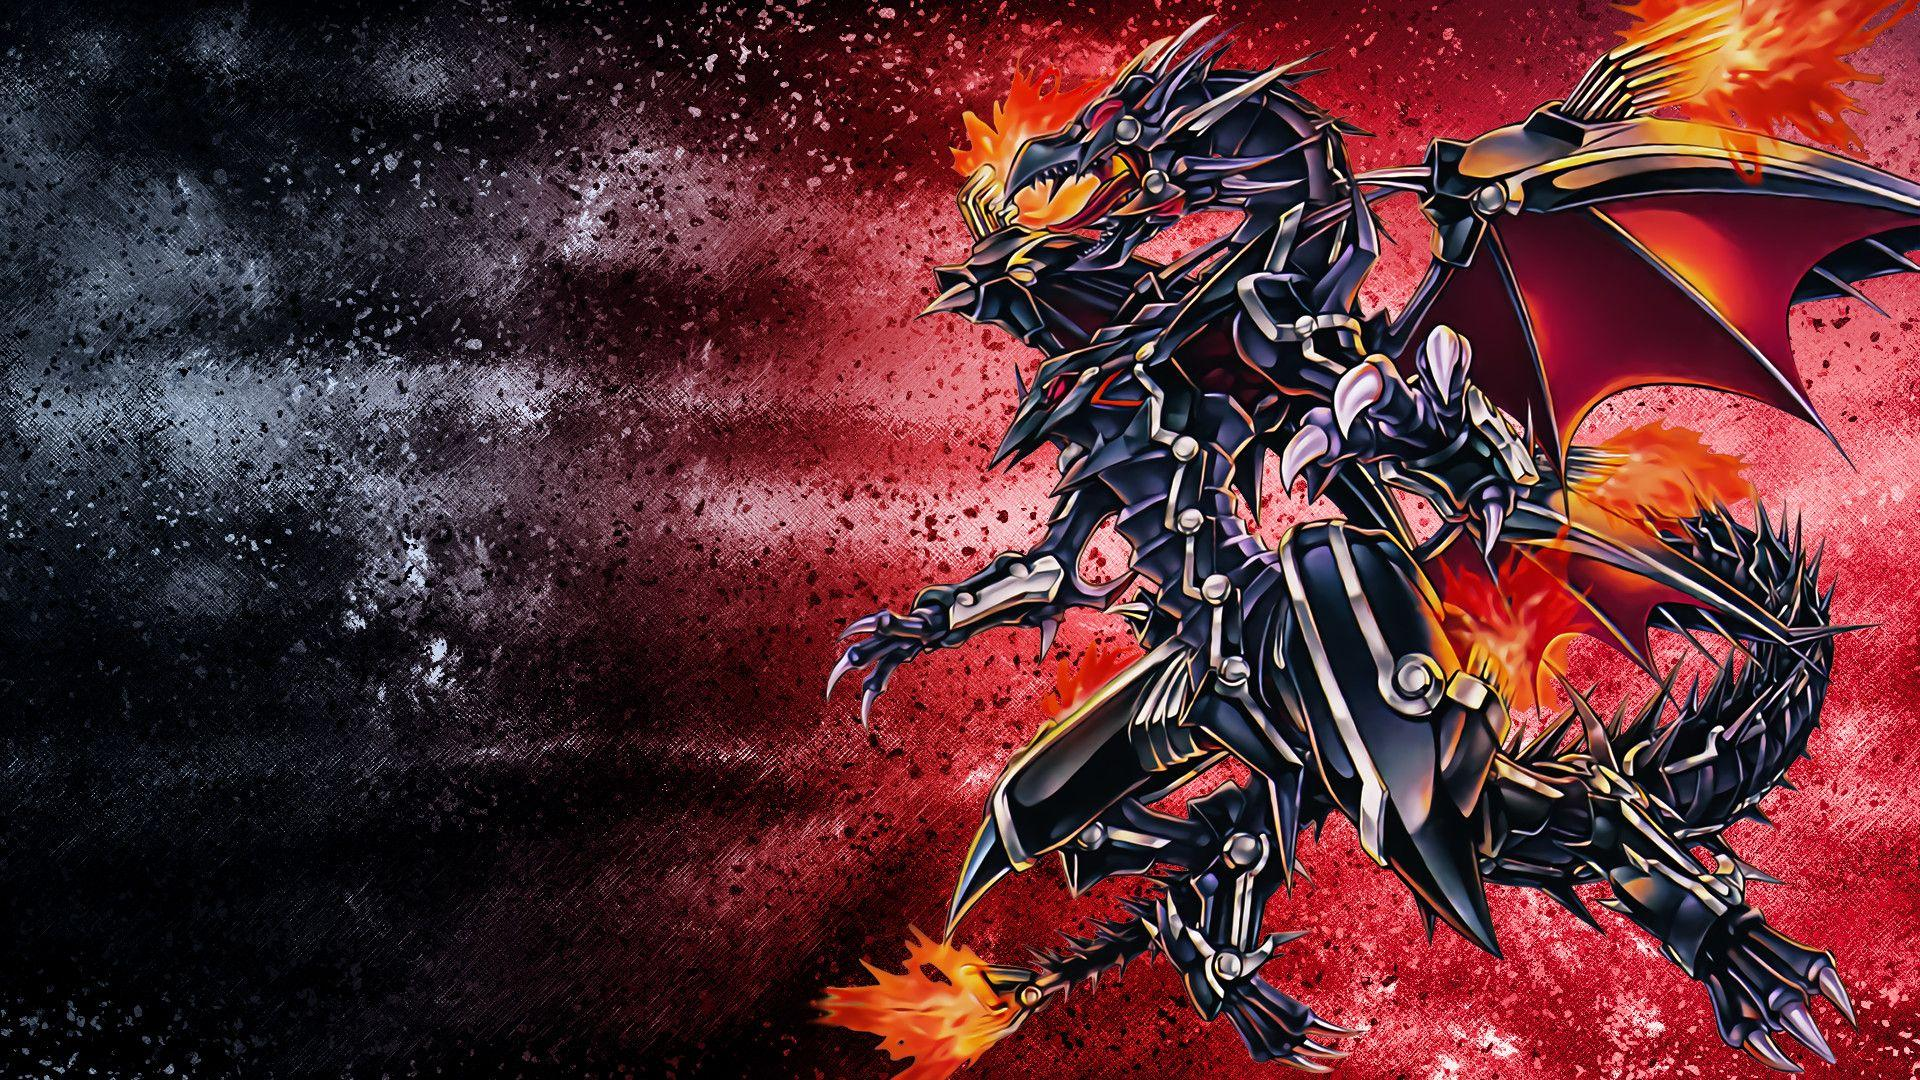 Hd Red Eyes Black Dragon Wallpapers Wallpaper Cave